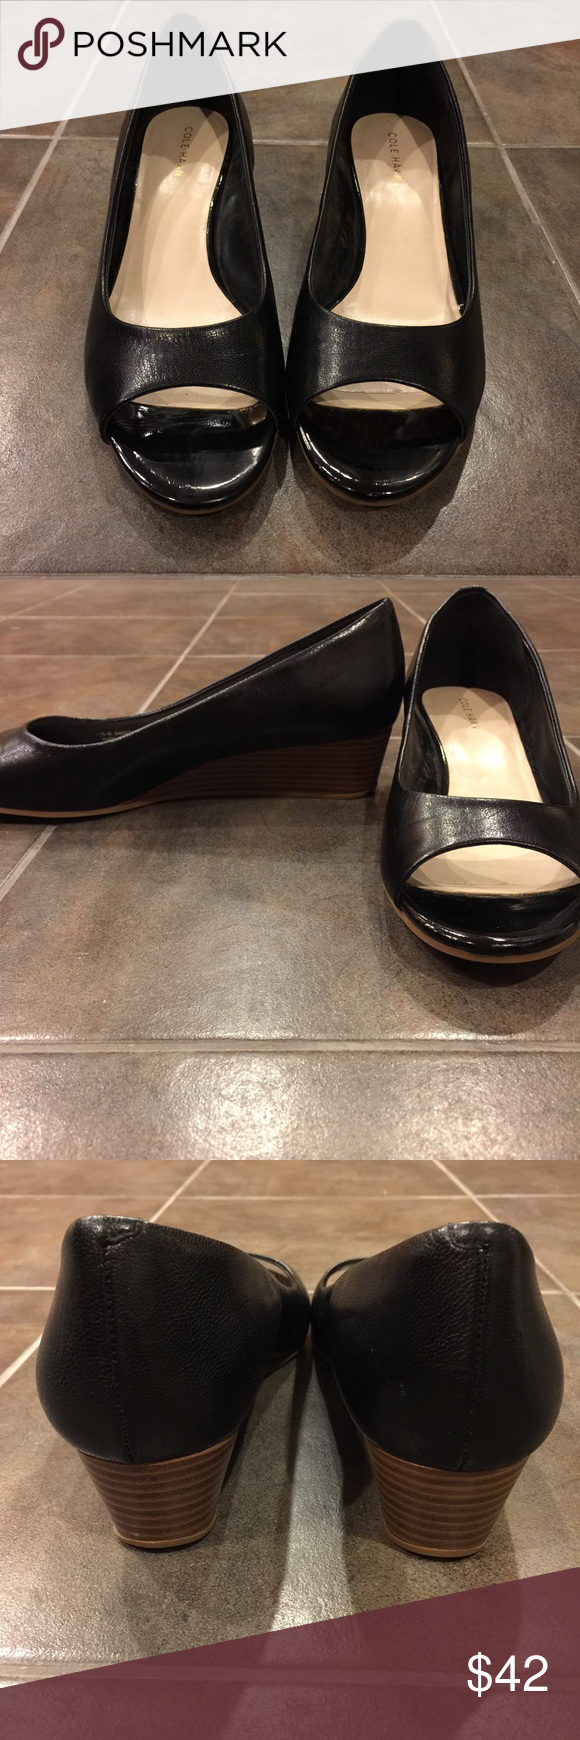 768bcff3a56b COLE HAAN Black Leather Peep Toe Wood Finish Wedge New without Tags! These  adorable and